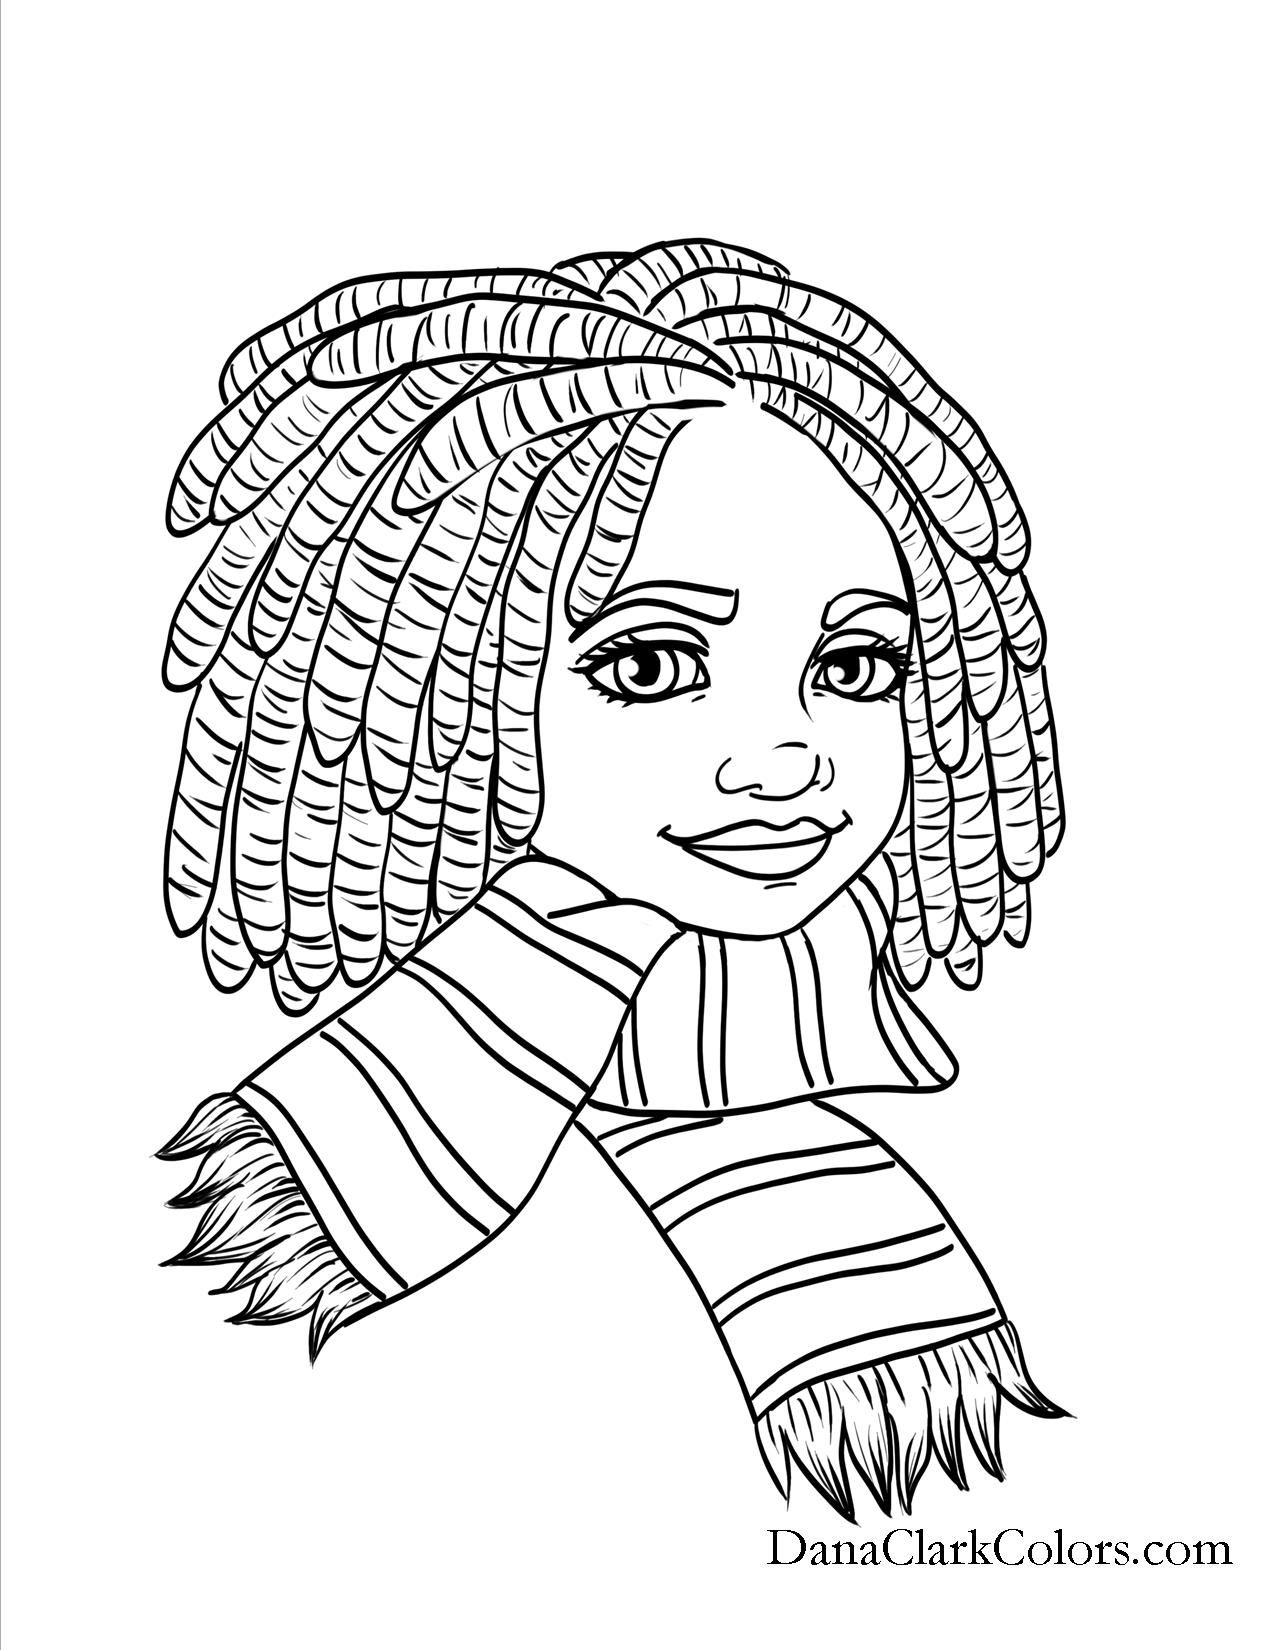 Free Coloring Pages Danaclarkcolors Com Coloring Books Free Coloring Pages Cross Coloring Page